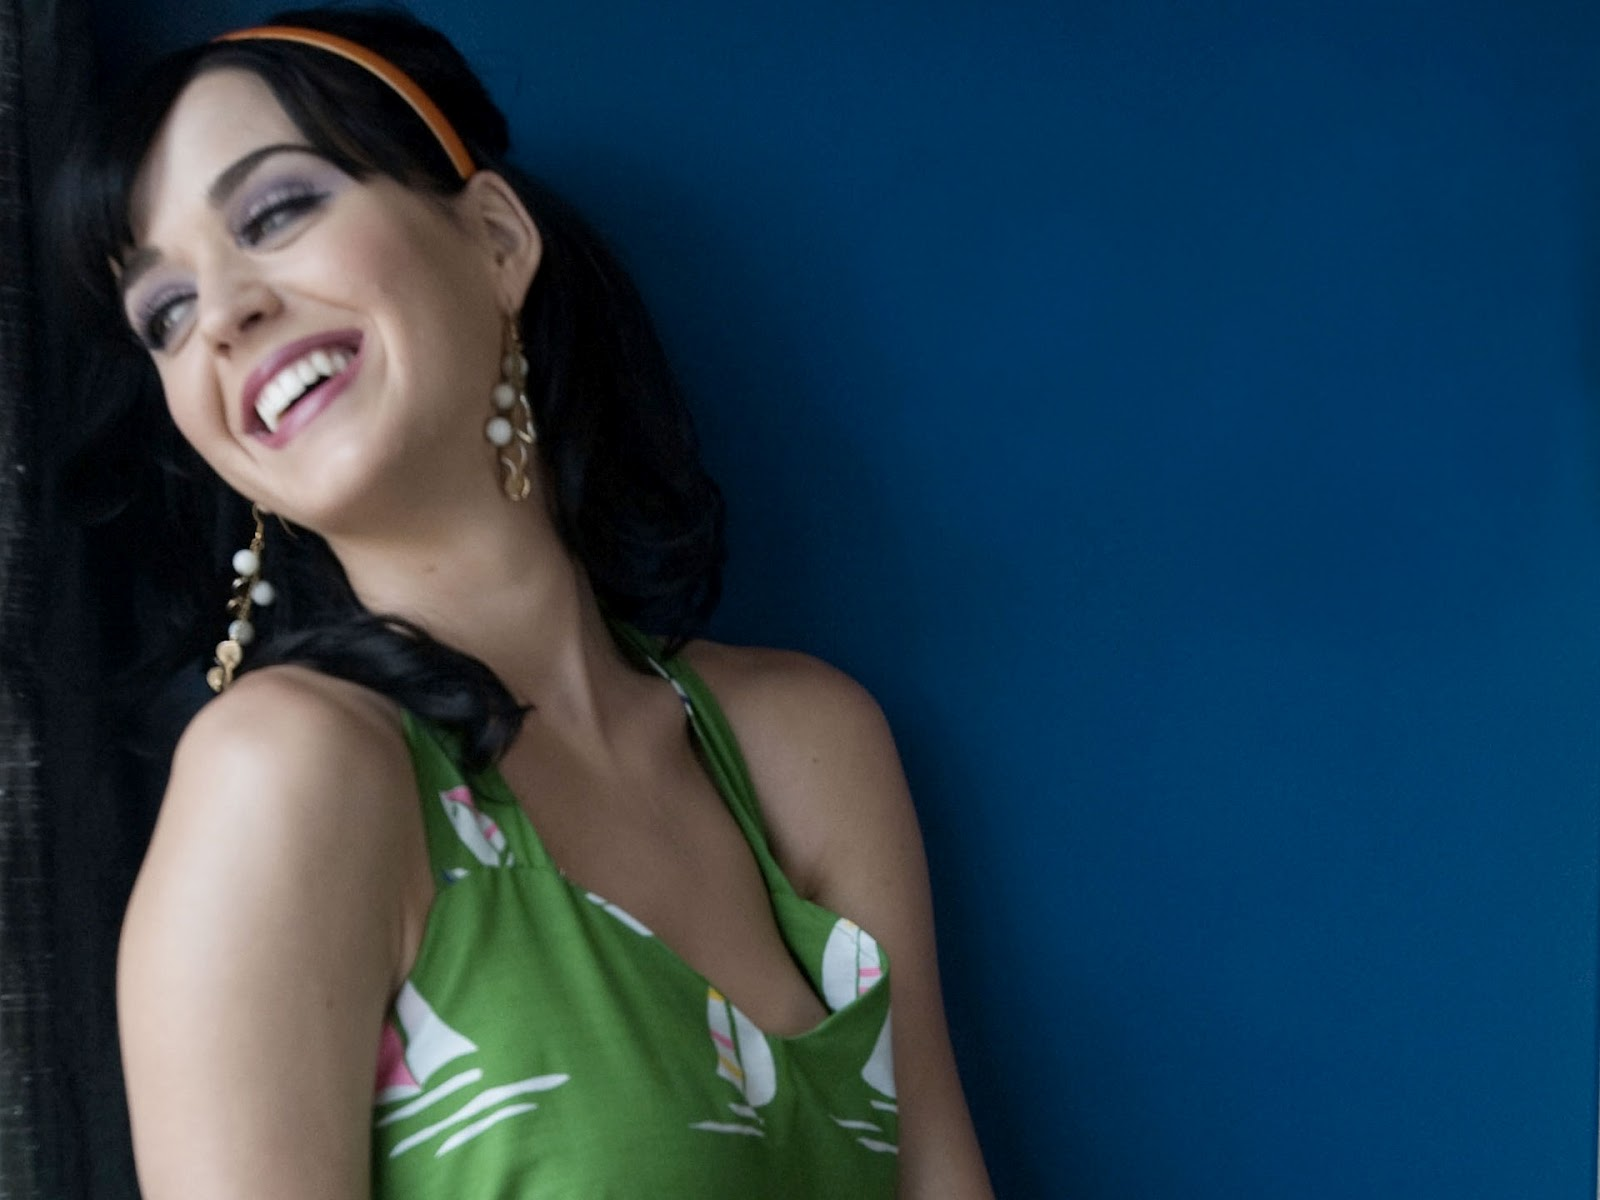 All Wallpapers: Katy Perry HD Wallpapers in 2012